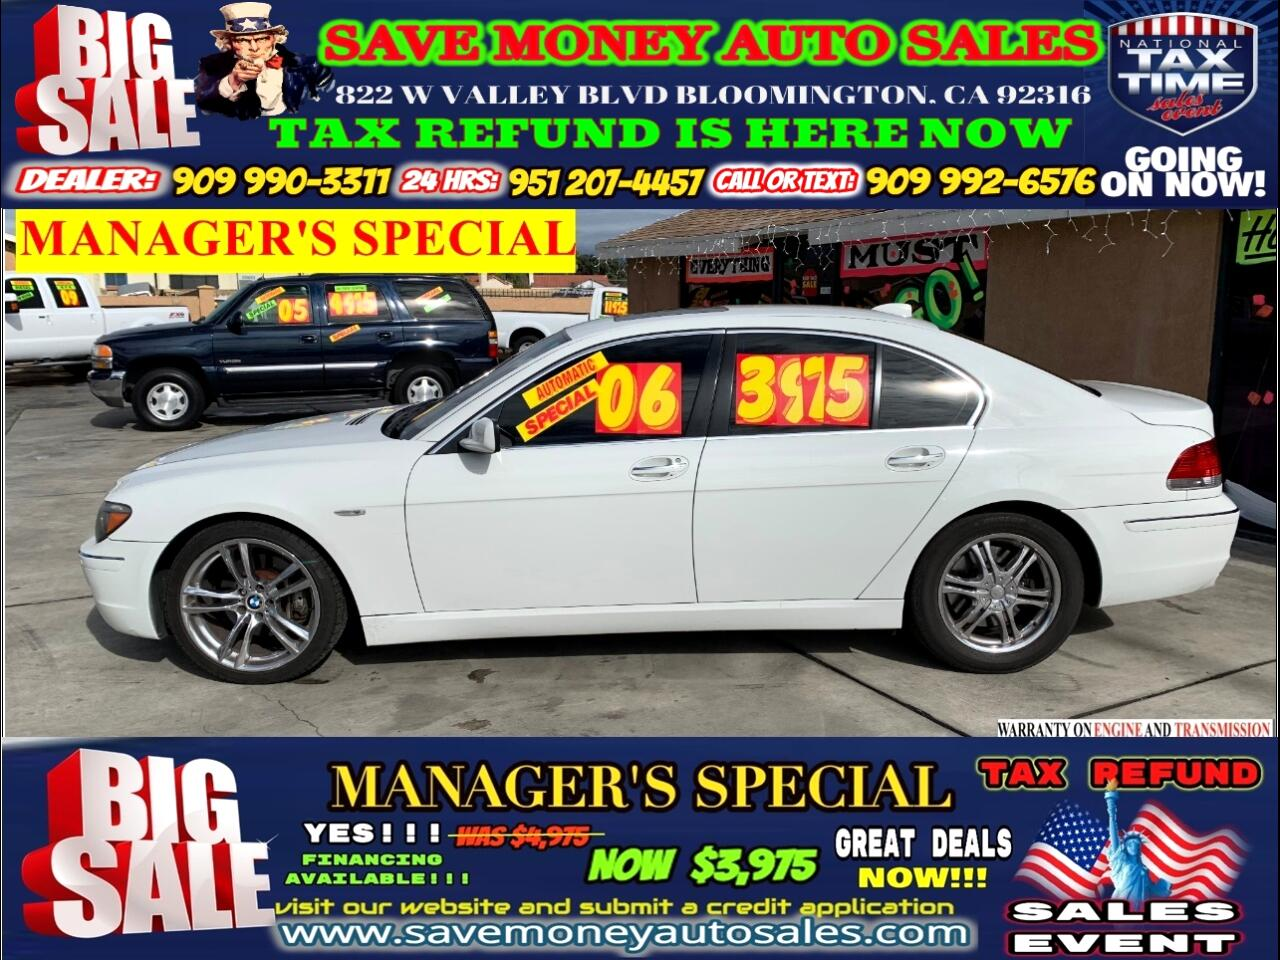 2006 BMW 7-Series 750i >>NAVIGATION + RIMS INCLUDED=MANAGER'S SPECIA